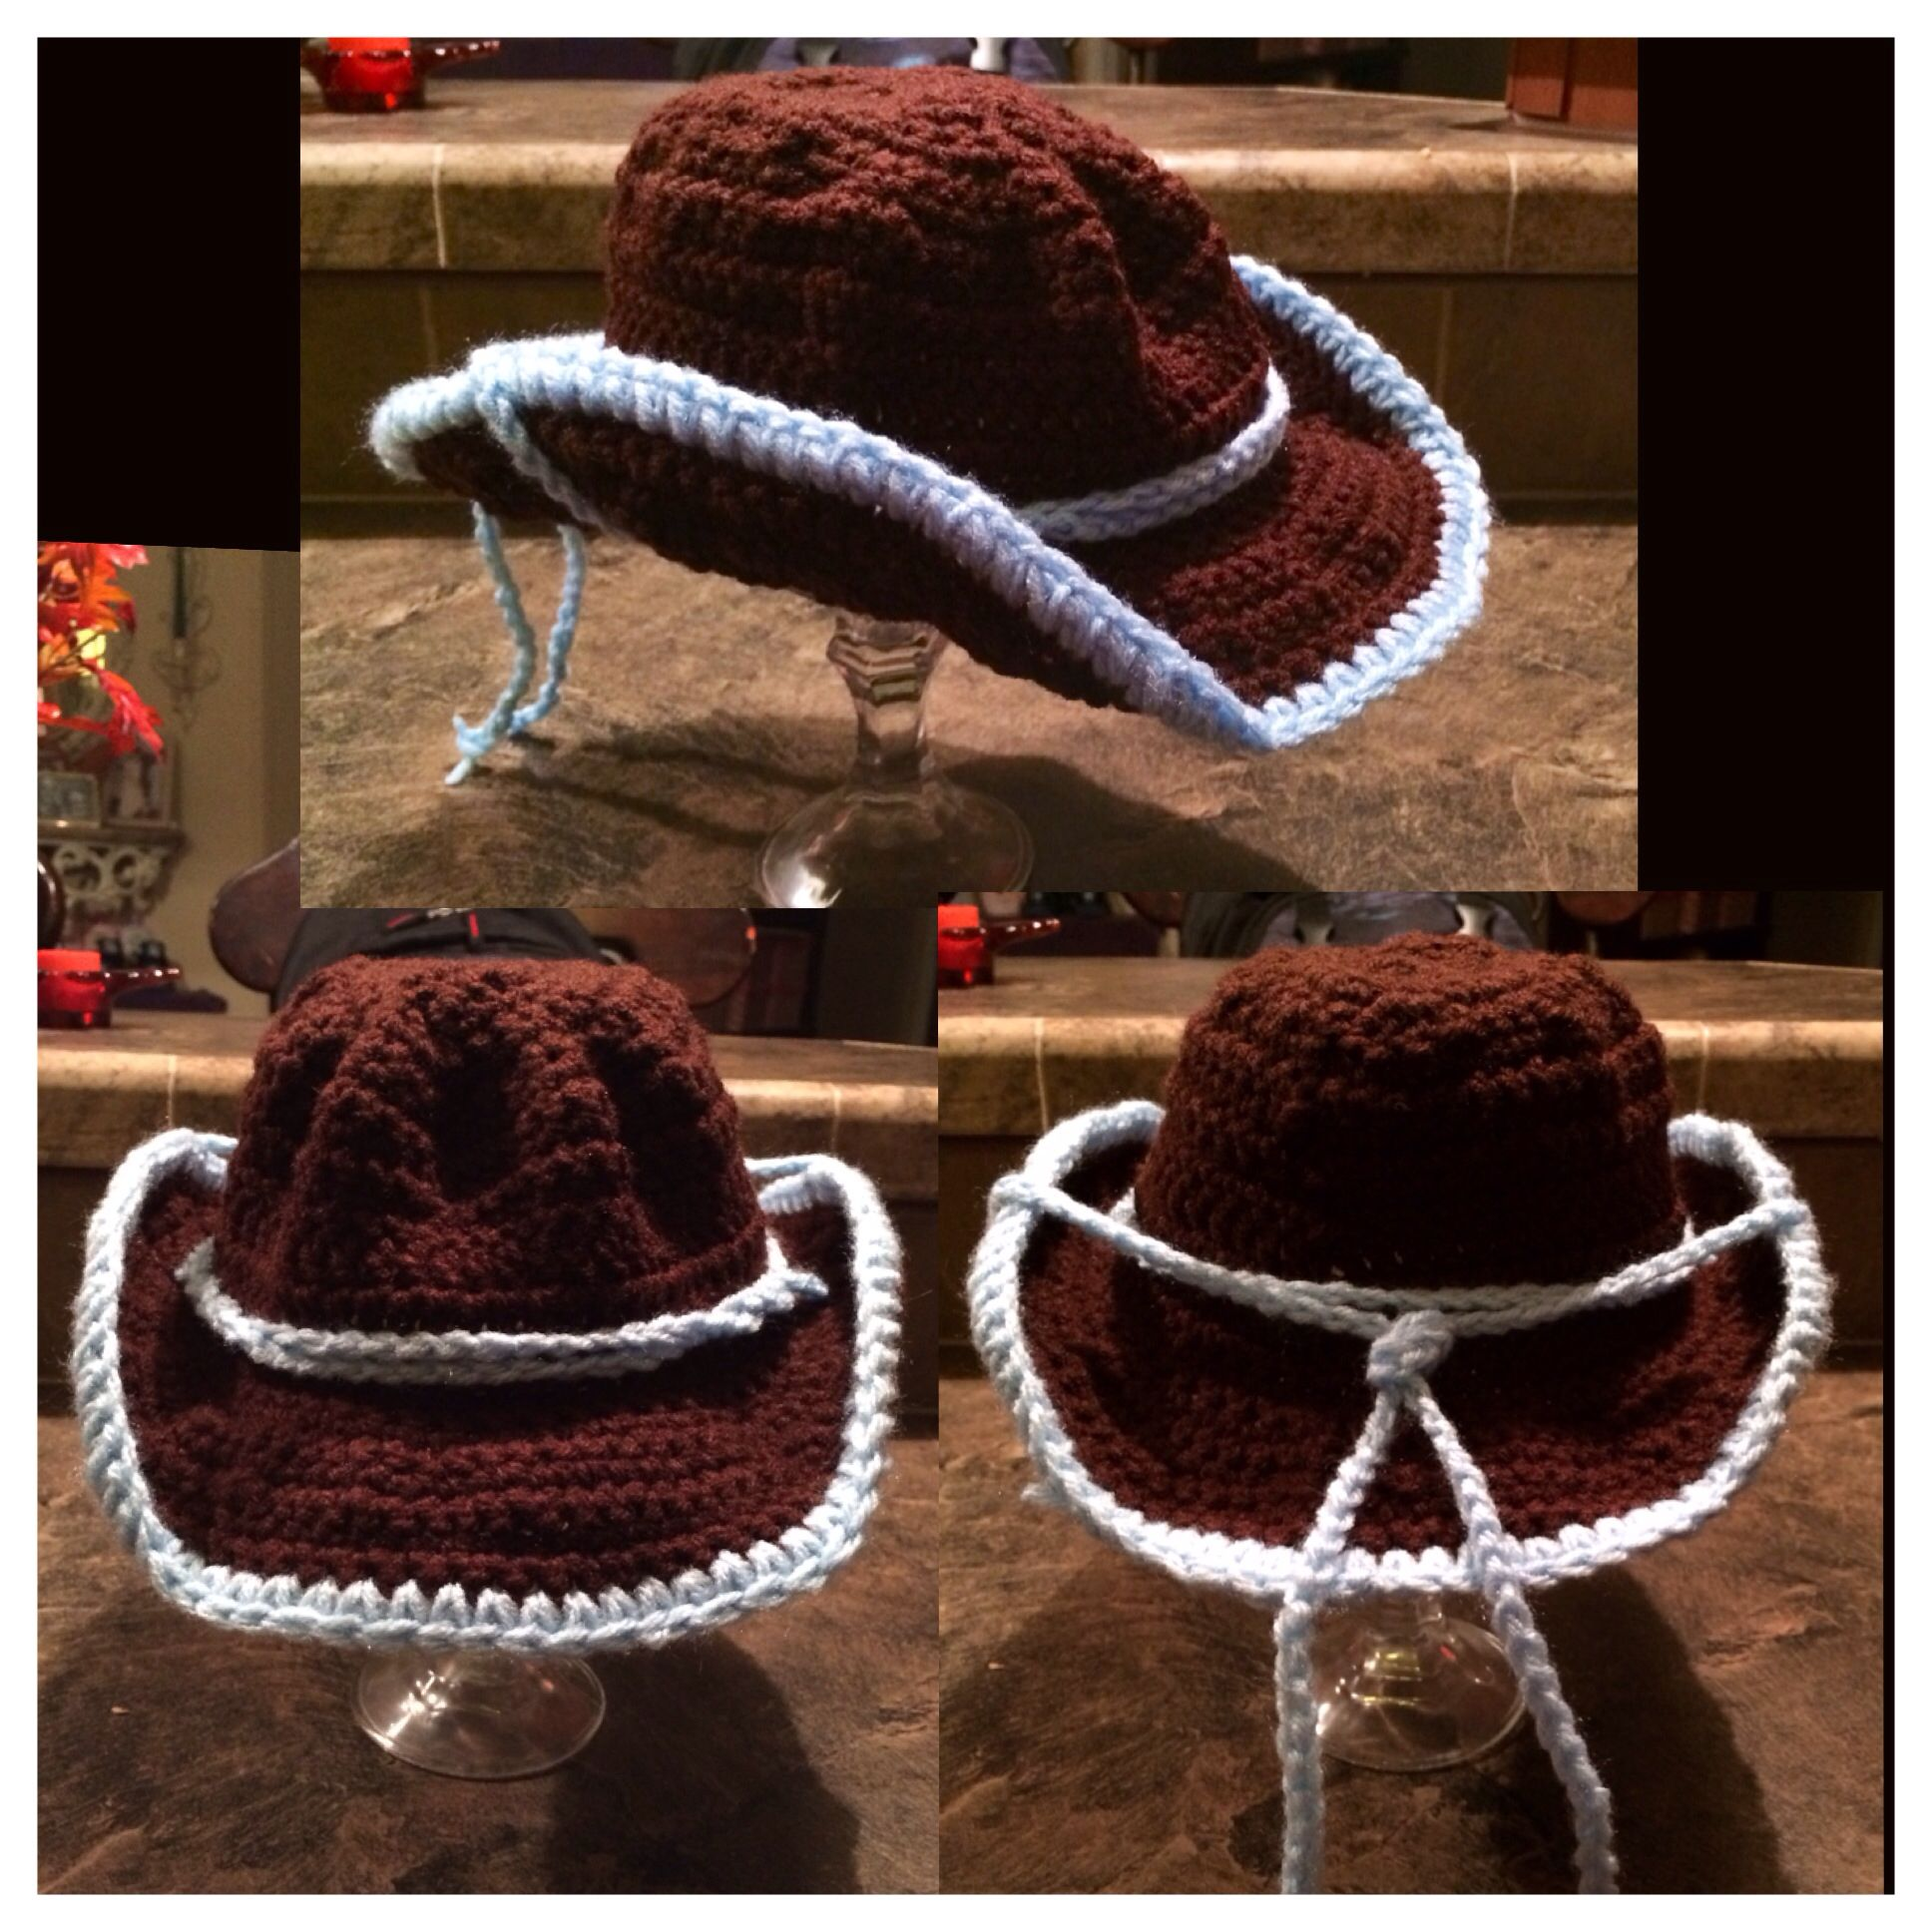 77a4c72d155 Crochet toddler size cowboy hat. I made this one without a pattern (not many